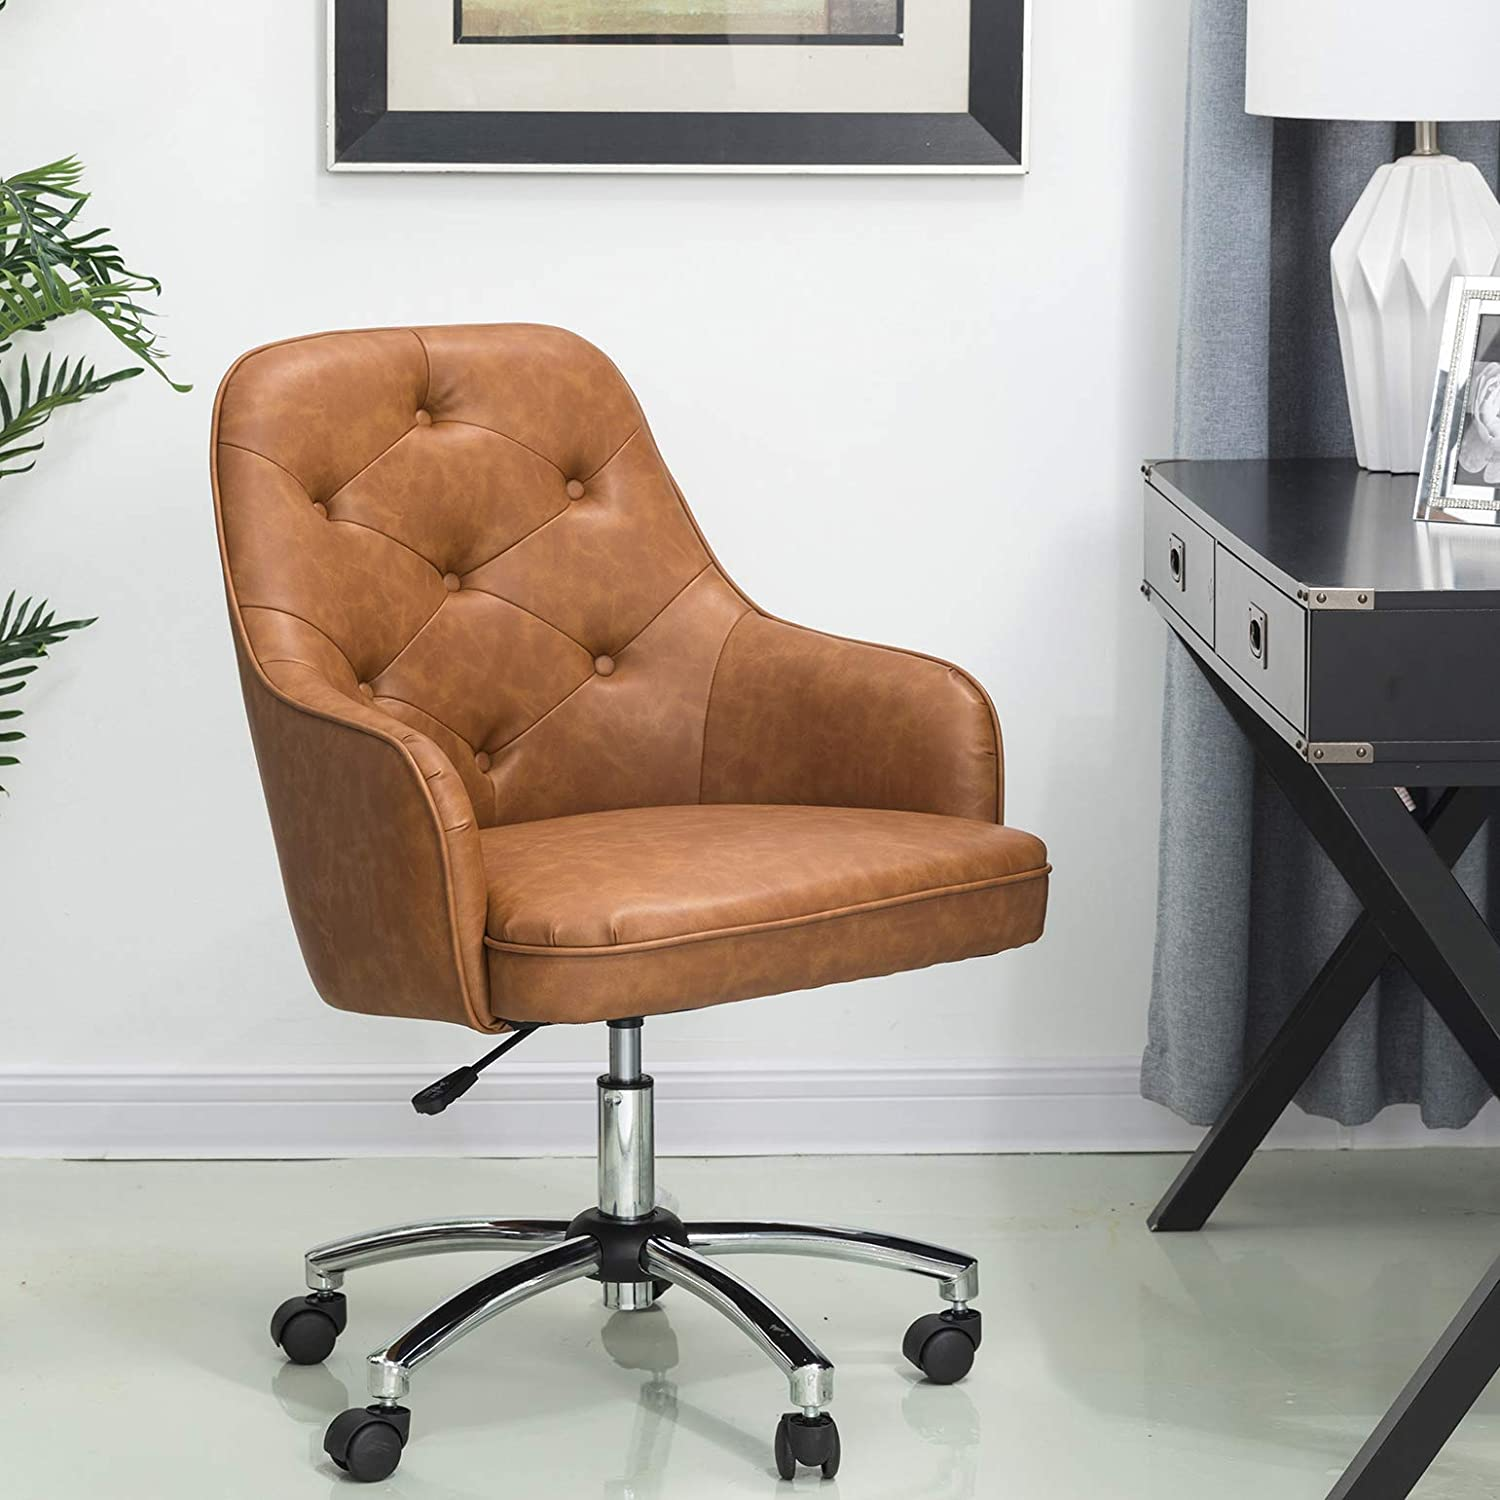 Glitzhome Home Office Chair Adjustable Mid-Back Ergonomic Desk Chair Comfortable Leather Computer Chair with Lumbar Support Modern Rolling Swivel Chair with Armrest, Caramel